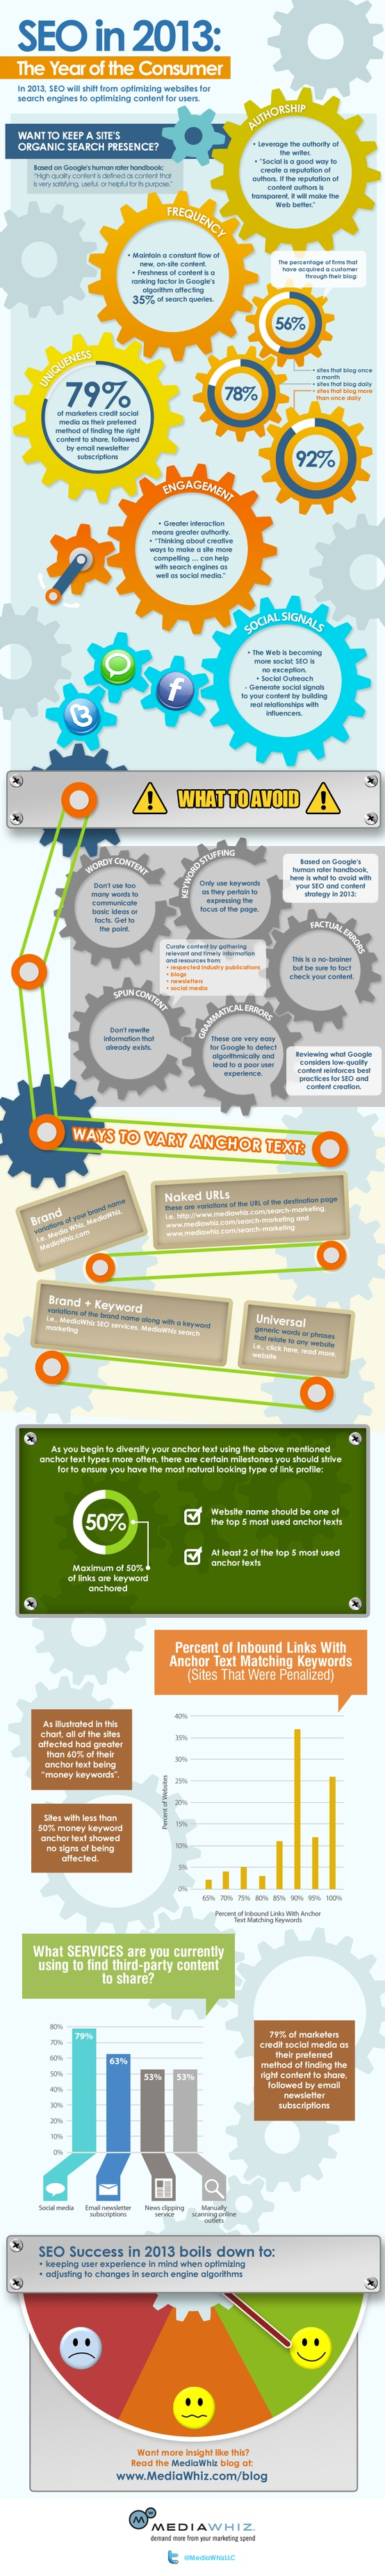 infographic-seo in 2013